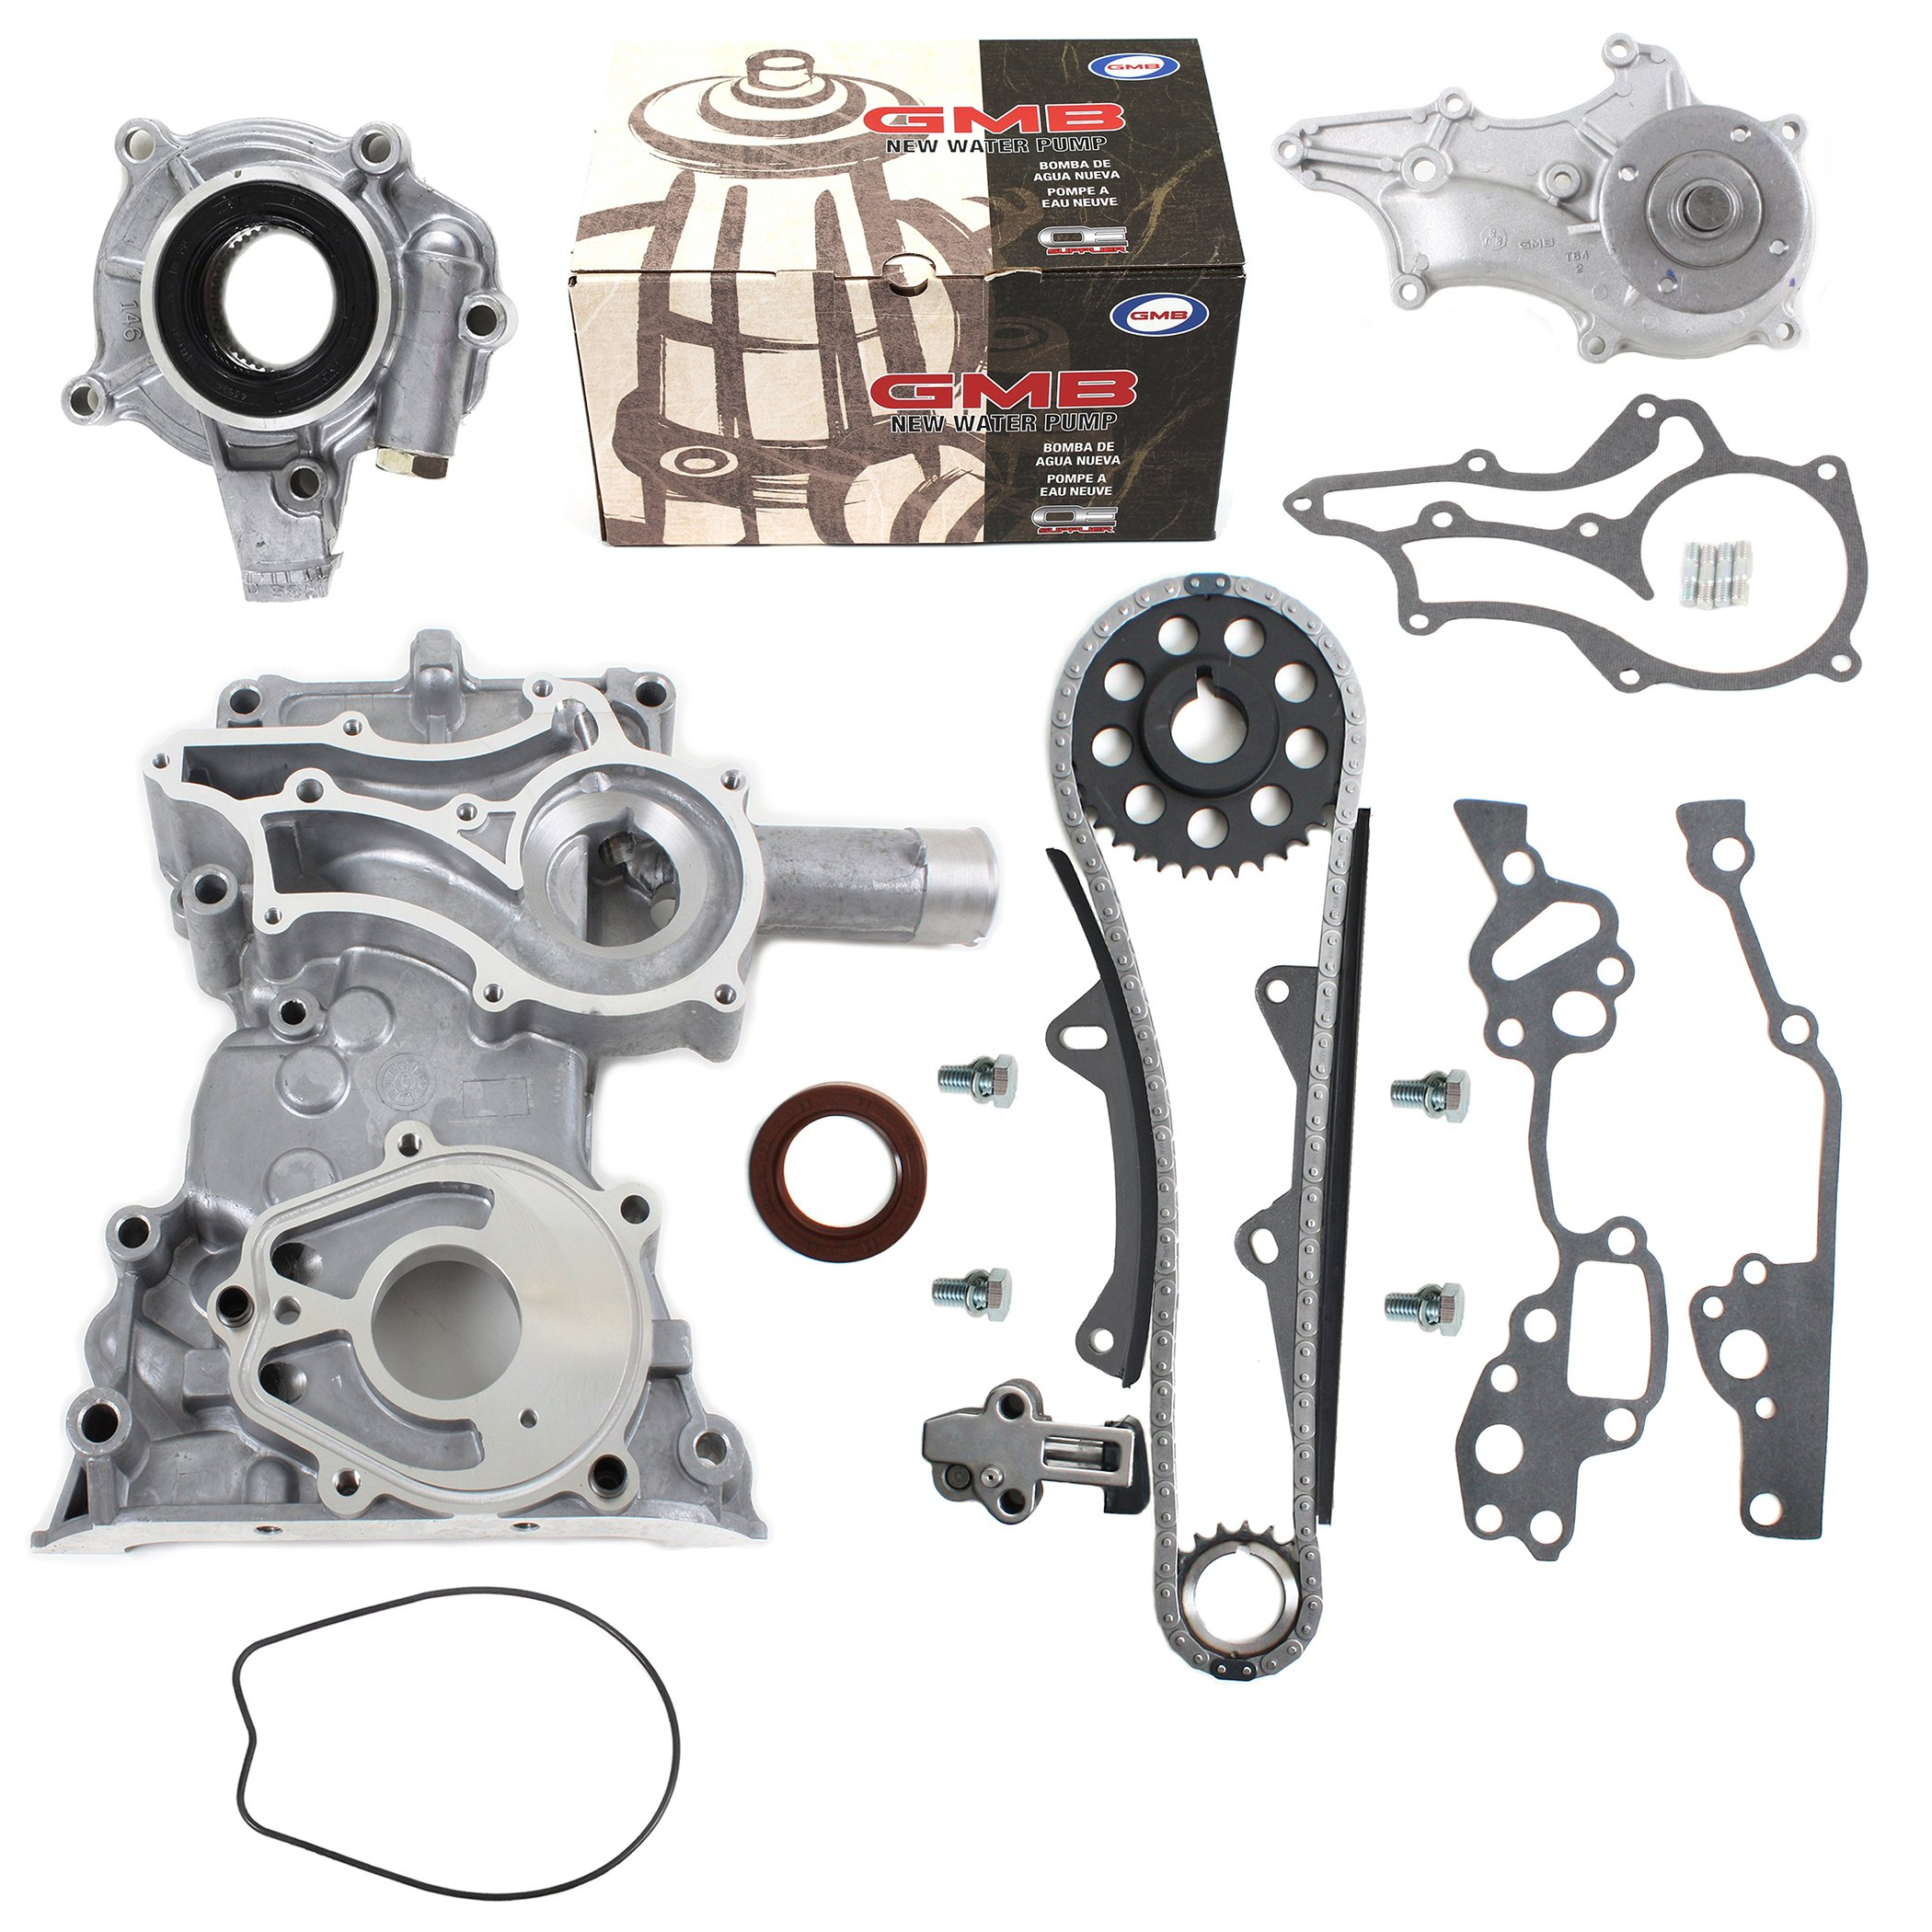 NEW TK10120TCWPOP HD Timing Chain Kit (2 Heavy Duty Metal Guides & Bolts) with Timing Cover, Water Pump, & Oil Pump / 85-95 Toyota 2.4L 4Runner Pickup Celica SOHC 8-Valve Engine 22R 22RE 22REC by CNS EngineParts